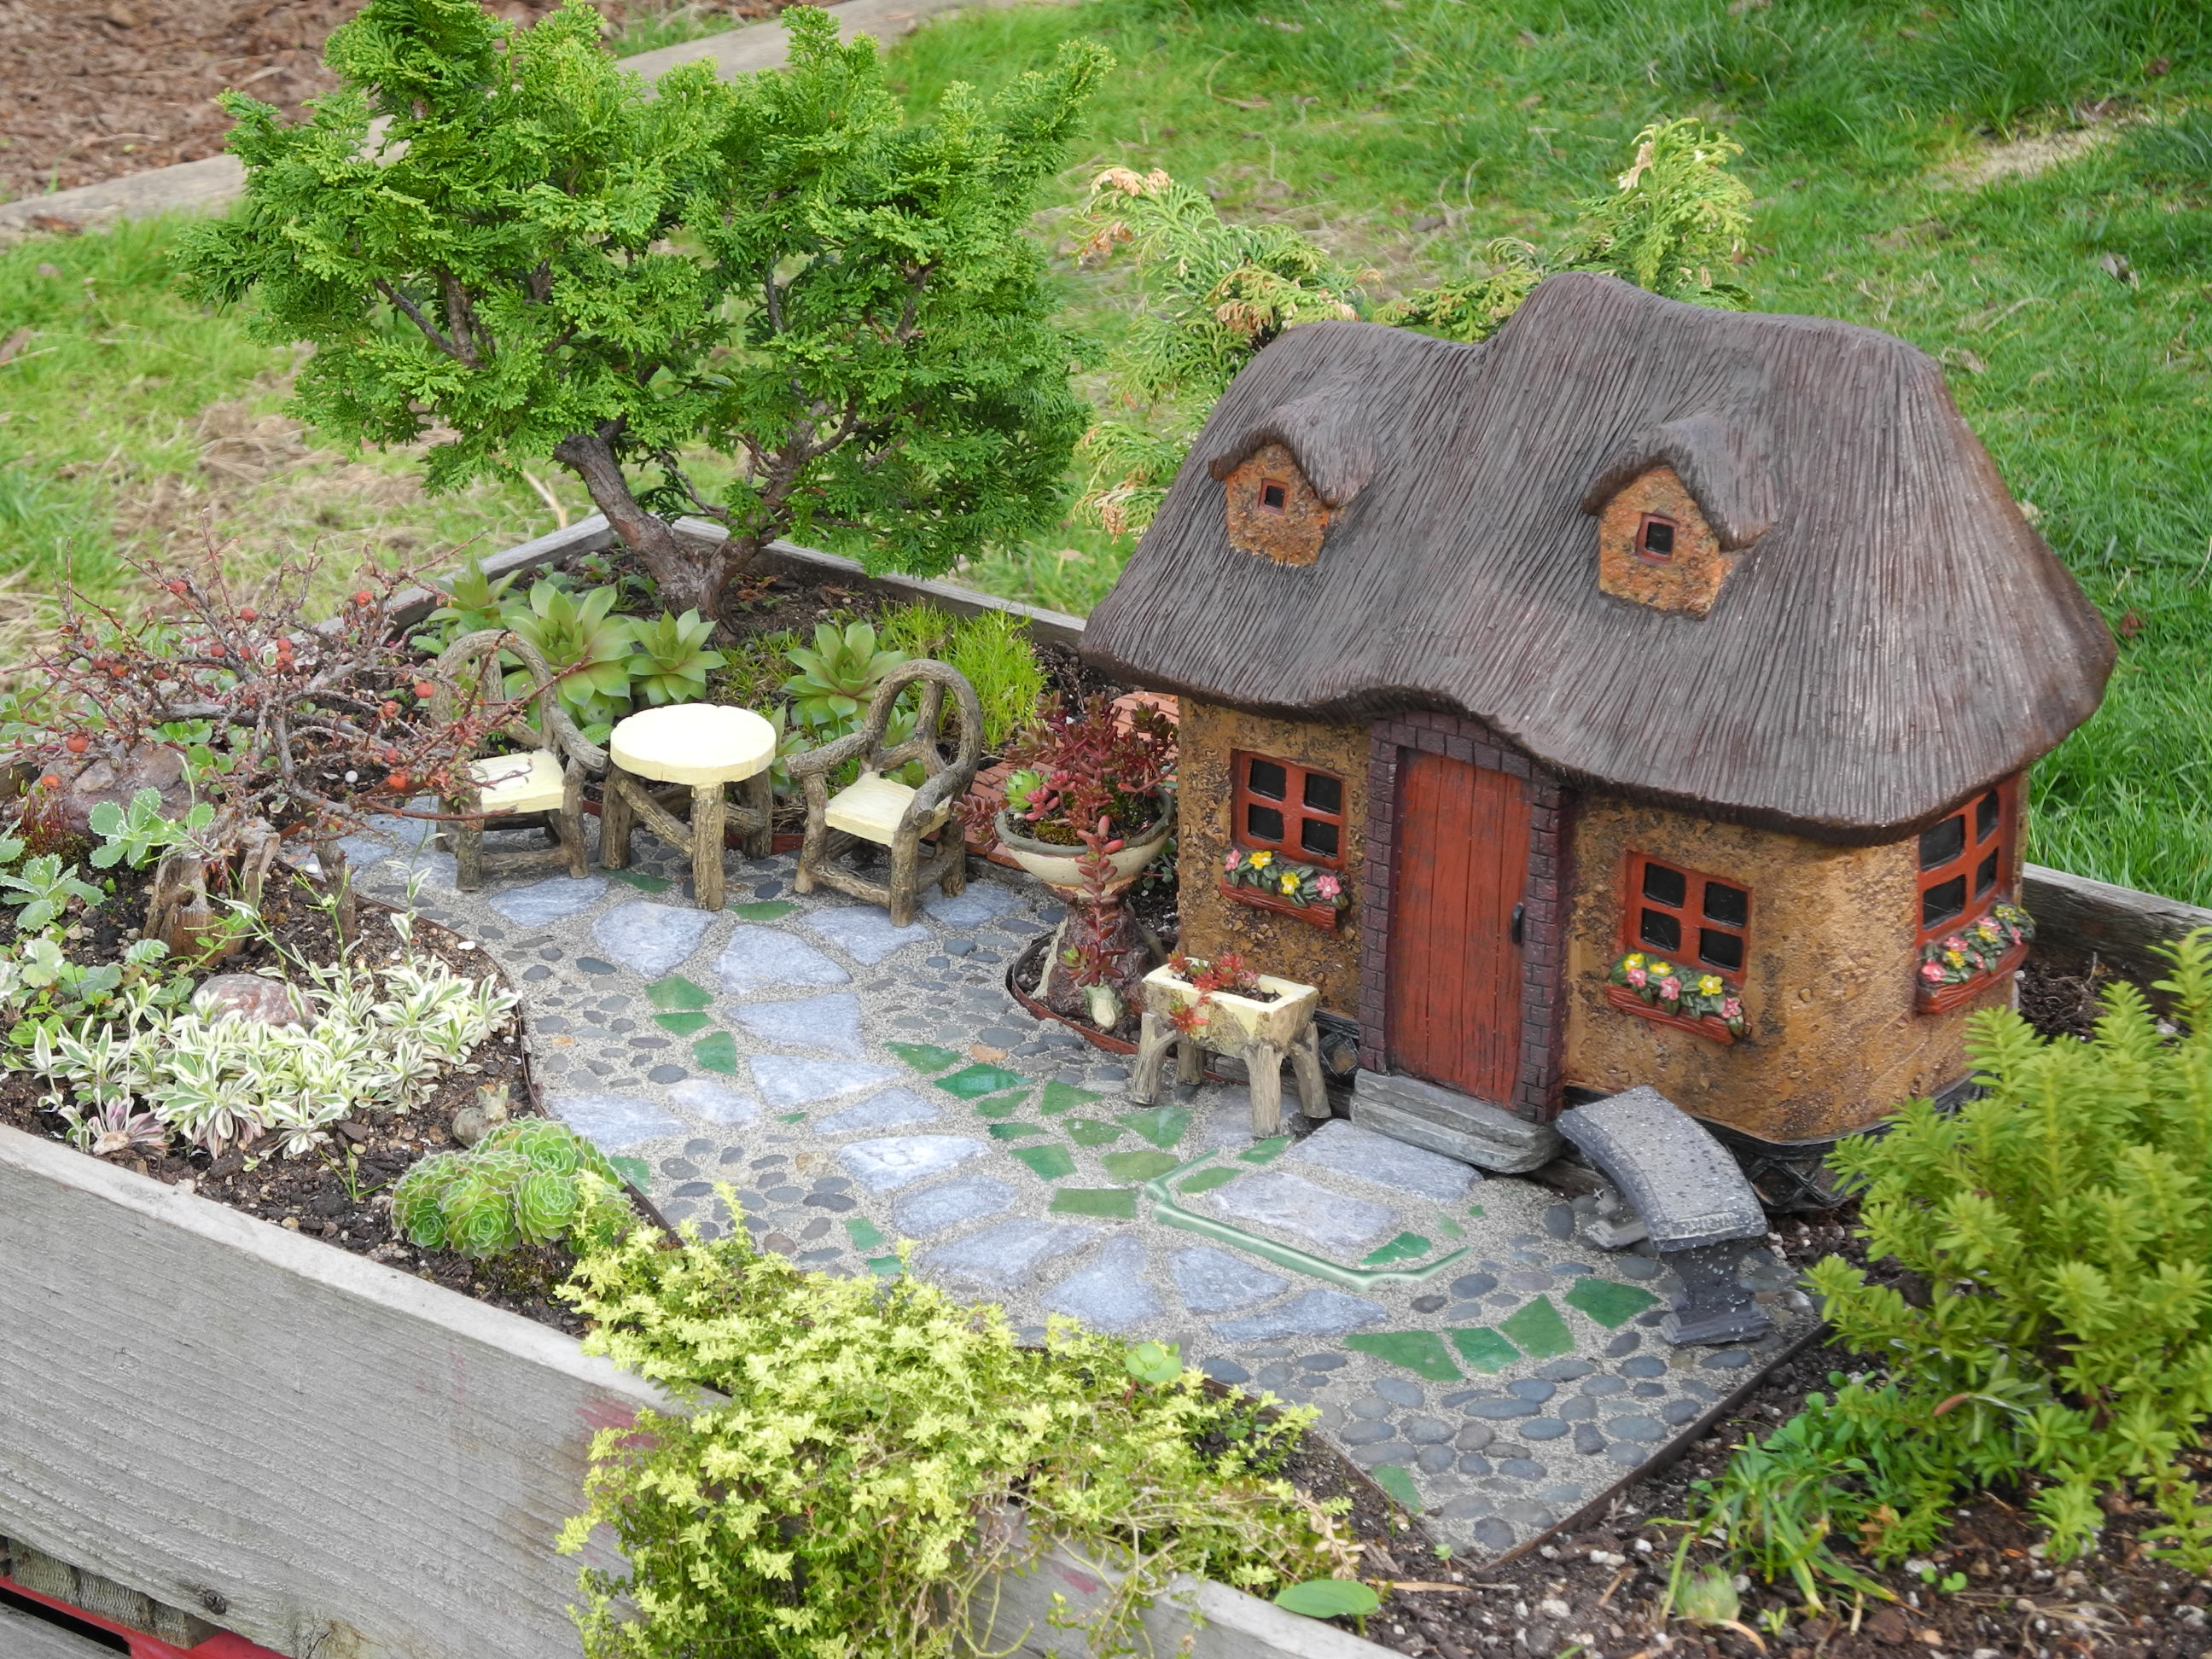 Fantastic Design It As You Would Houses Will Need A Clear Foundation Area From Made A Pathwayto Fairies Miniature Garden Society When Building A Fairy Garden curbed Fairy Garden Houses